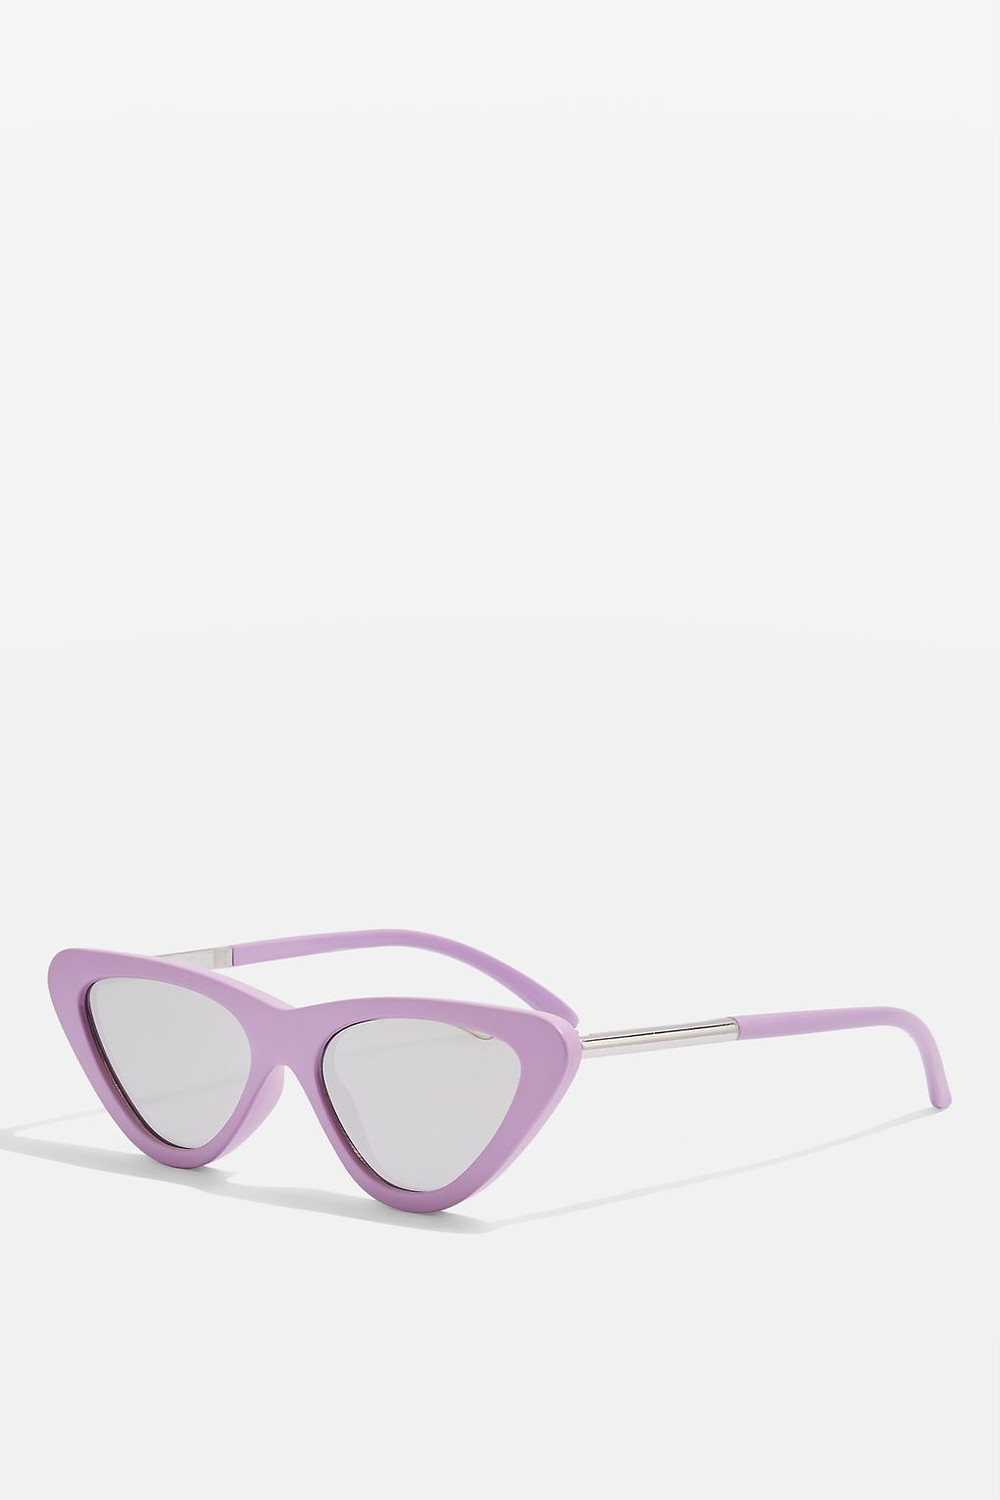 Topshop Point Polly Cat Eye Sunglasses $35